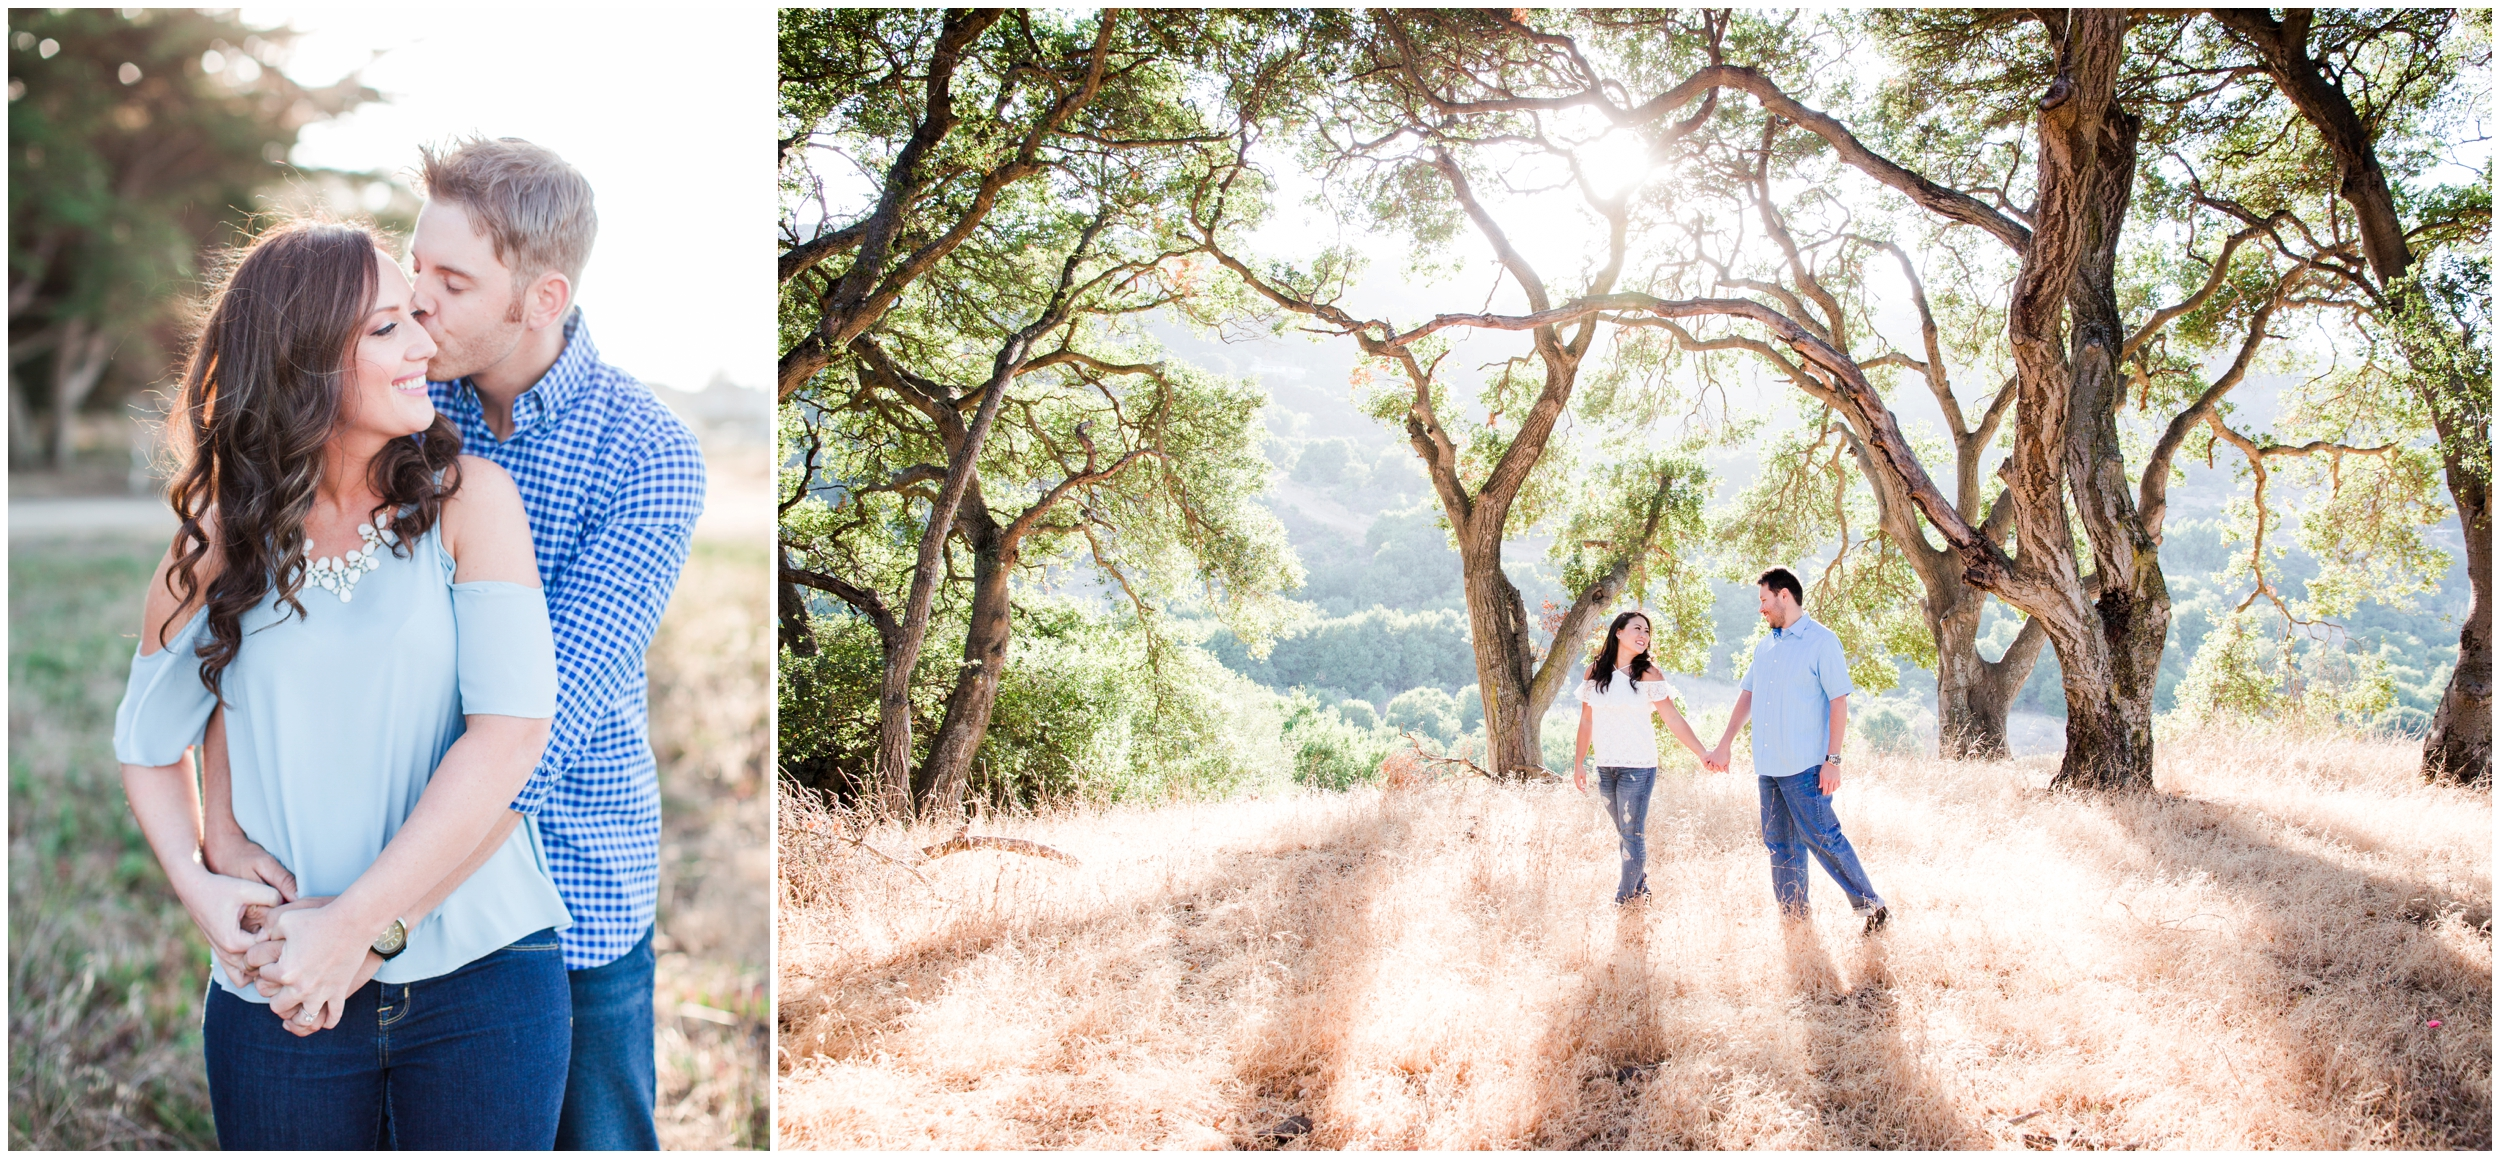 Engagement photos by Briana Calderon Photography based in the Greater Seattle & Tacoma, WA_0645.jpg